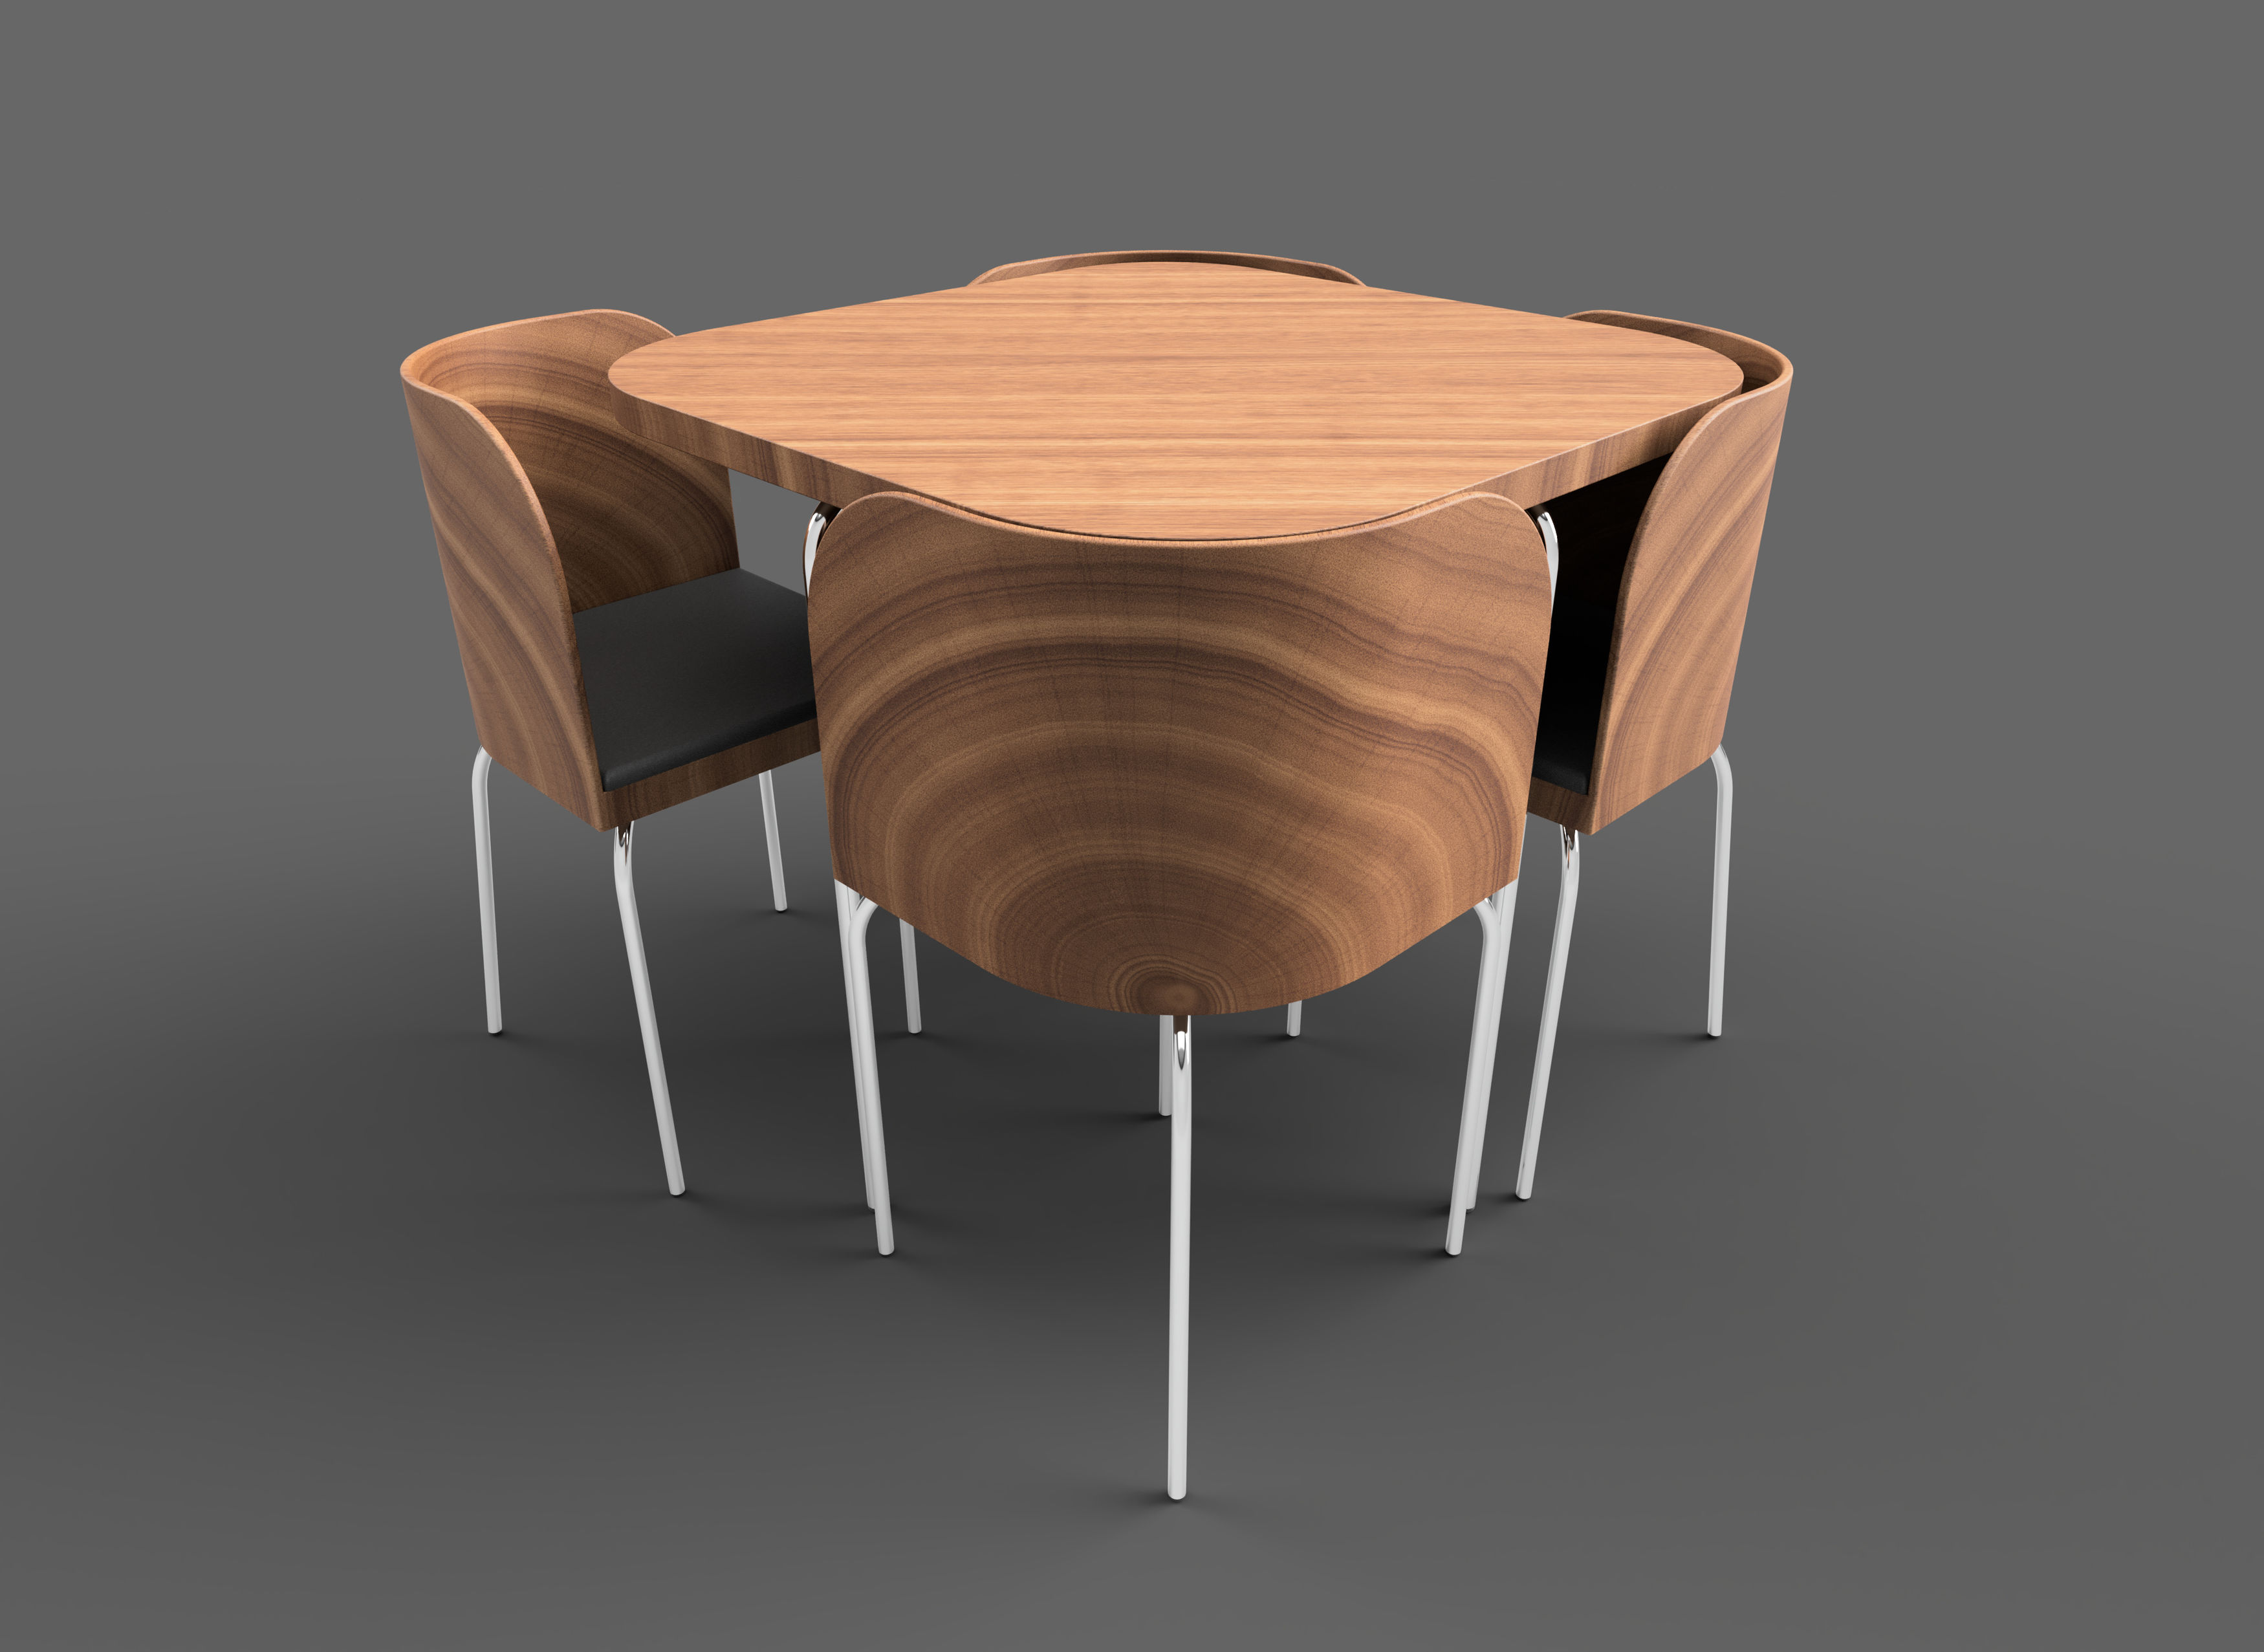 ikea fusion table and chairs autodesk